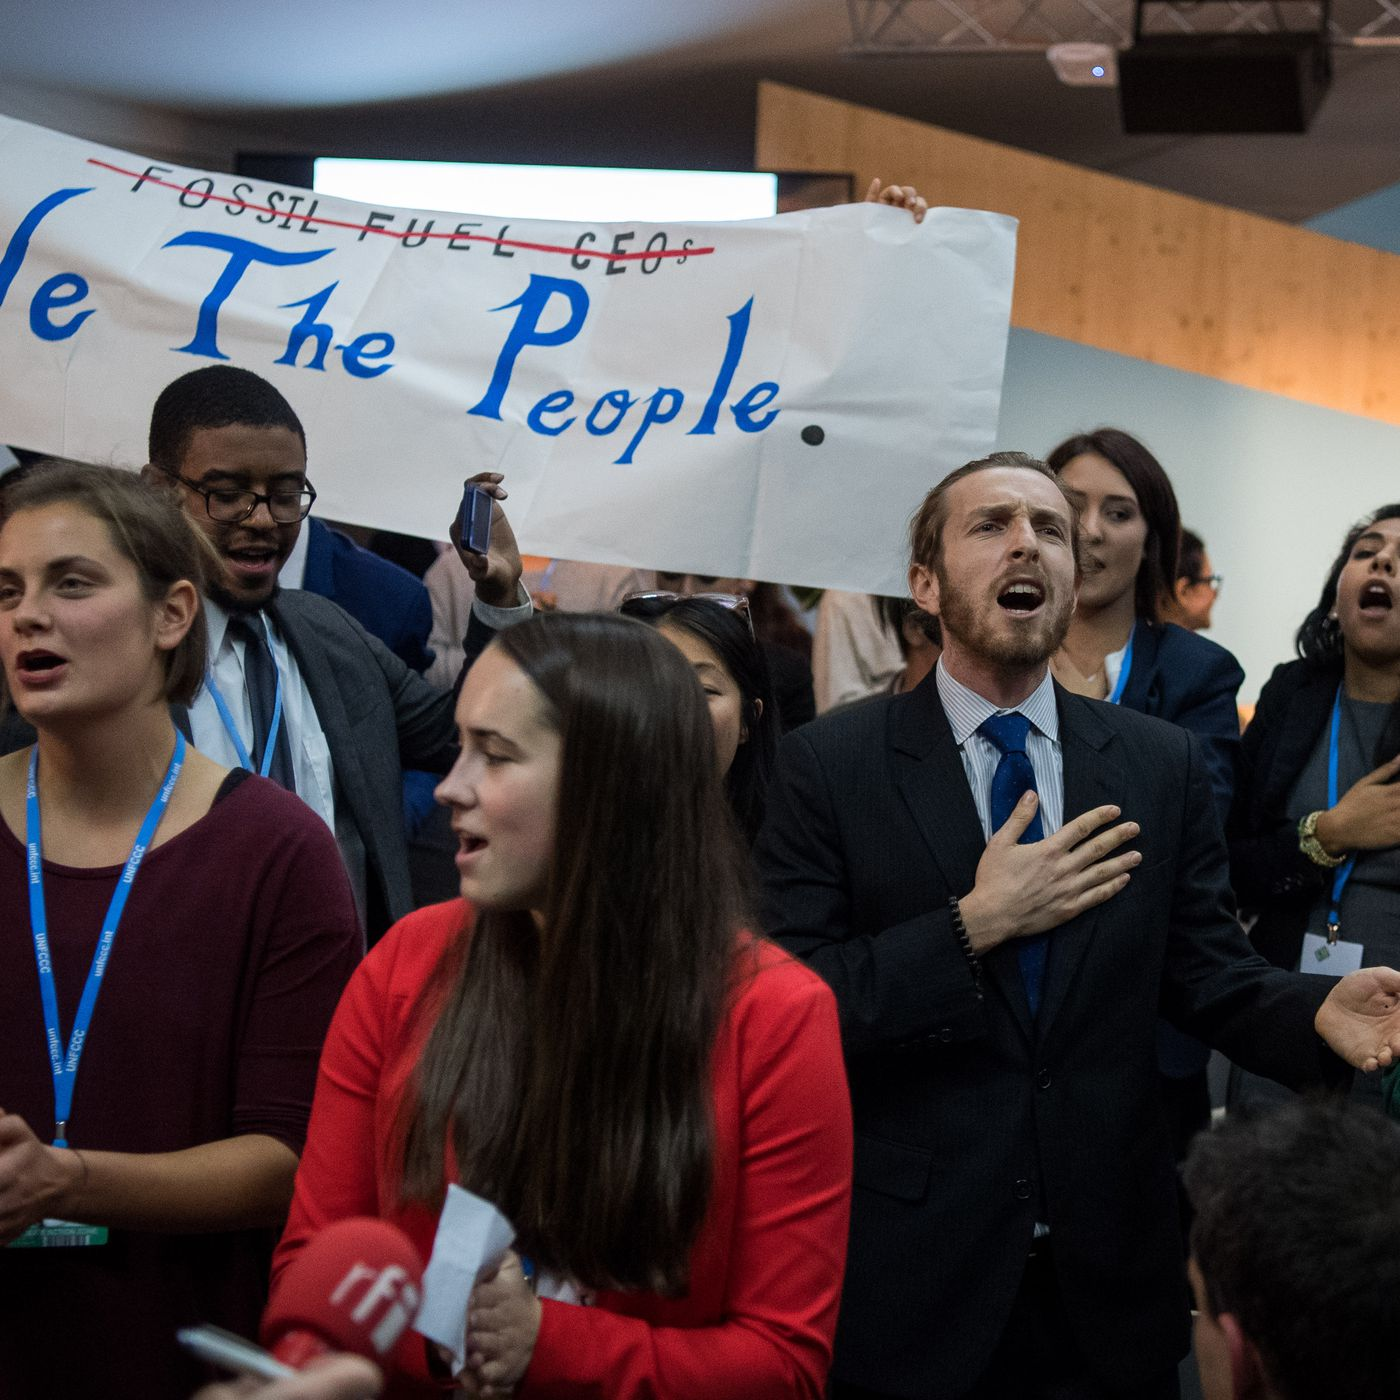 The Trump Administration Went To The Un Climate Talks To Promote